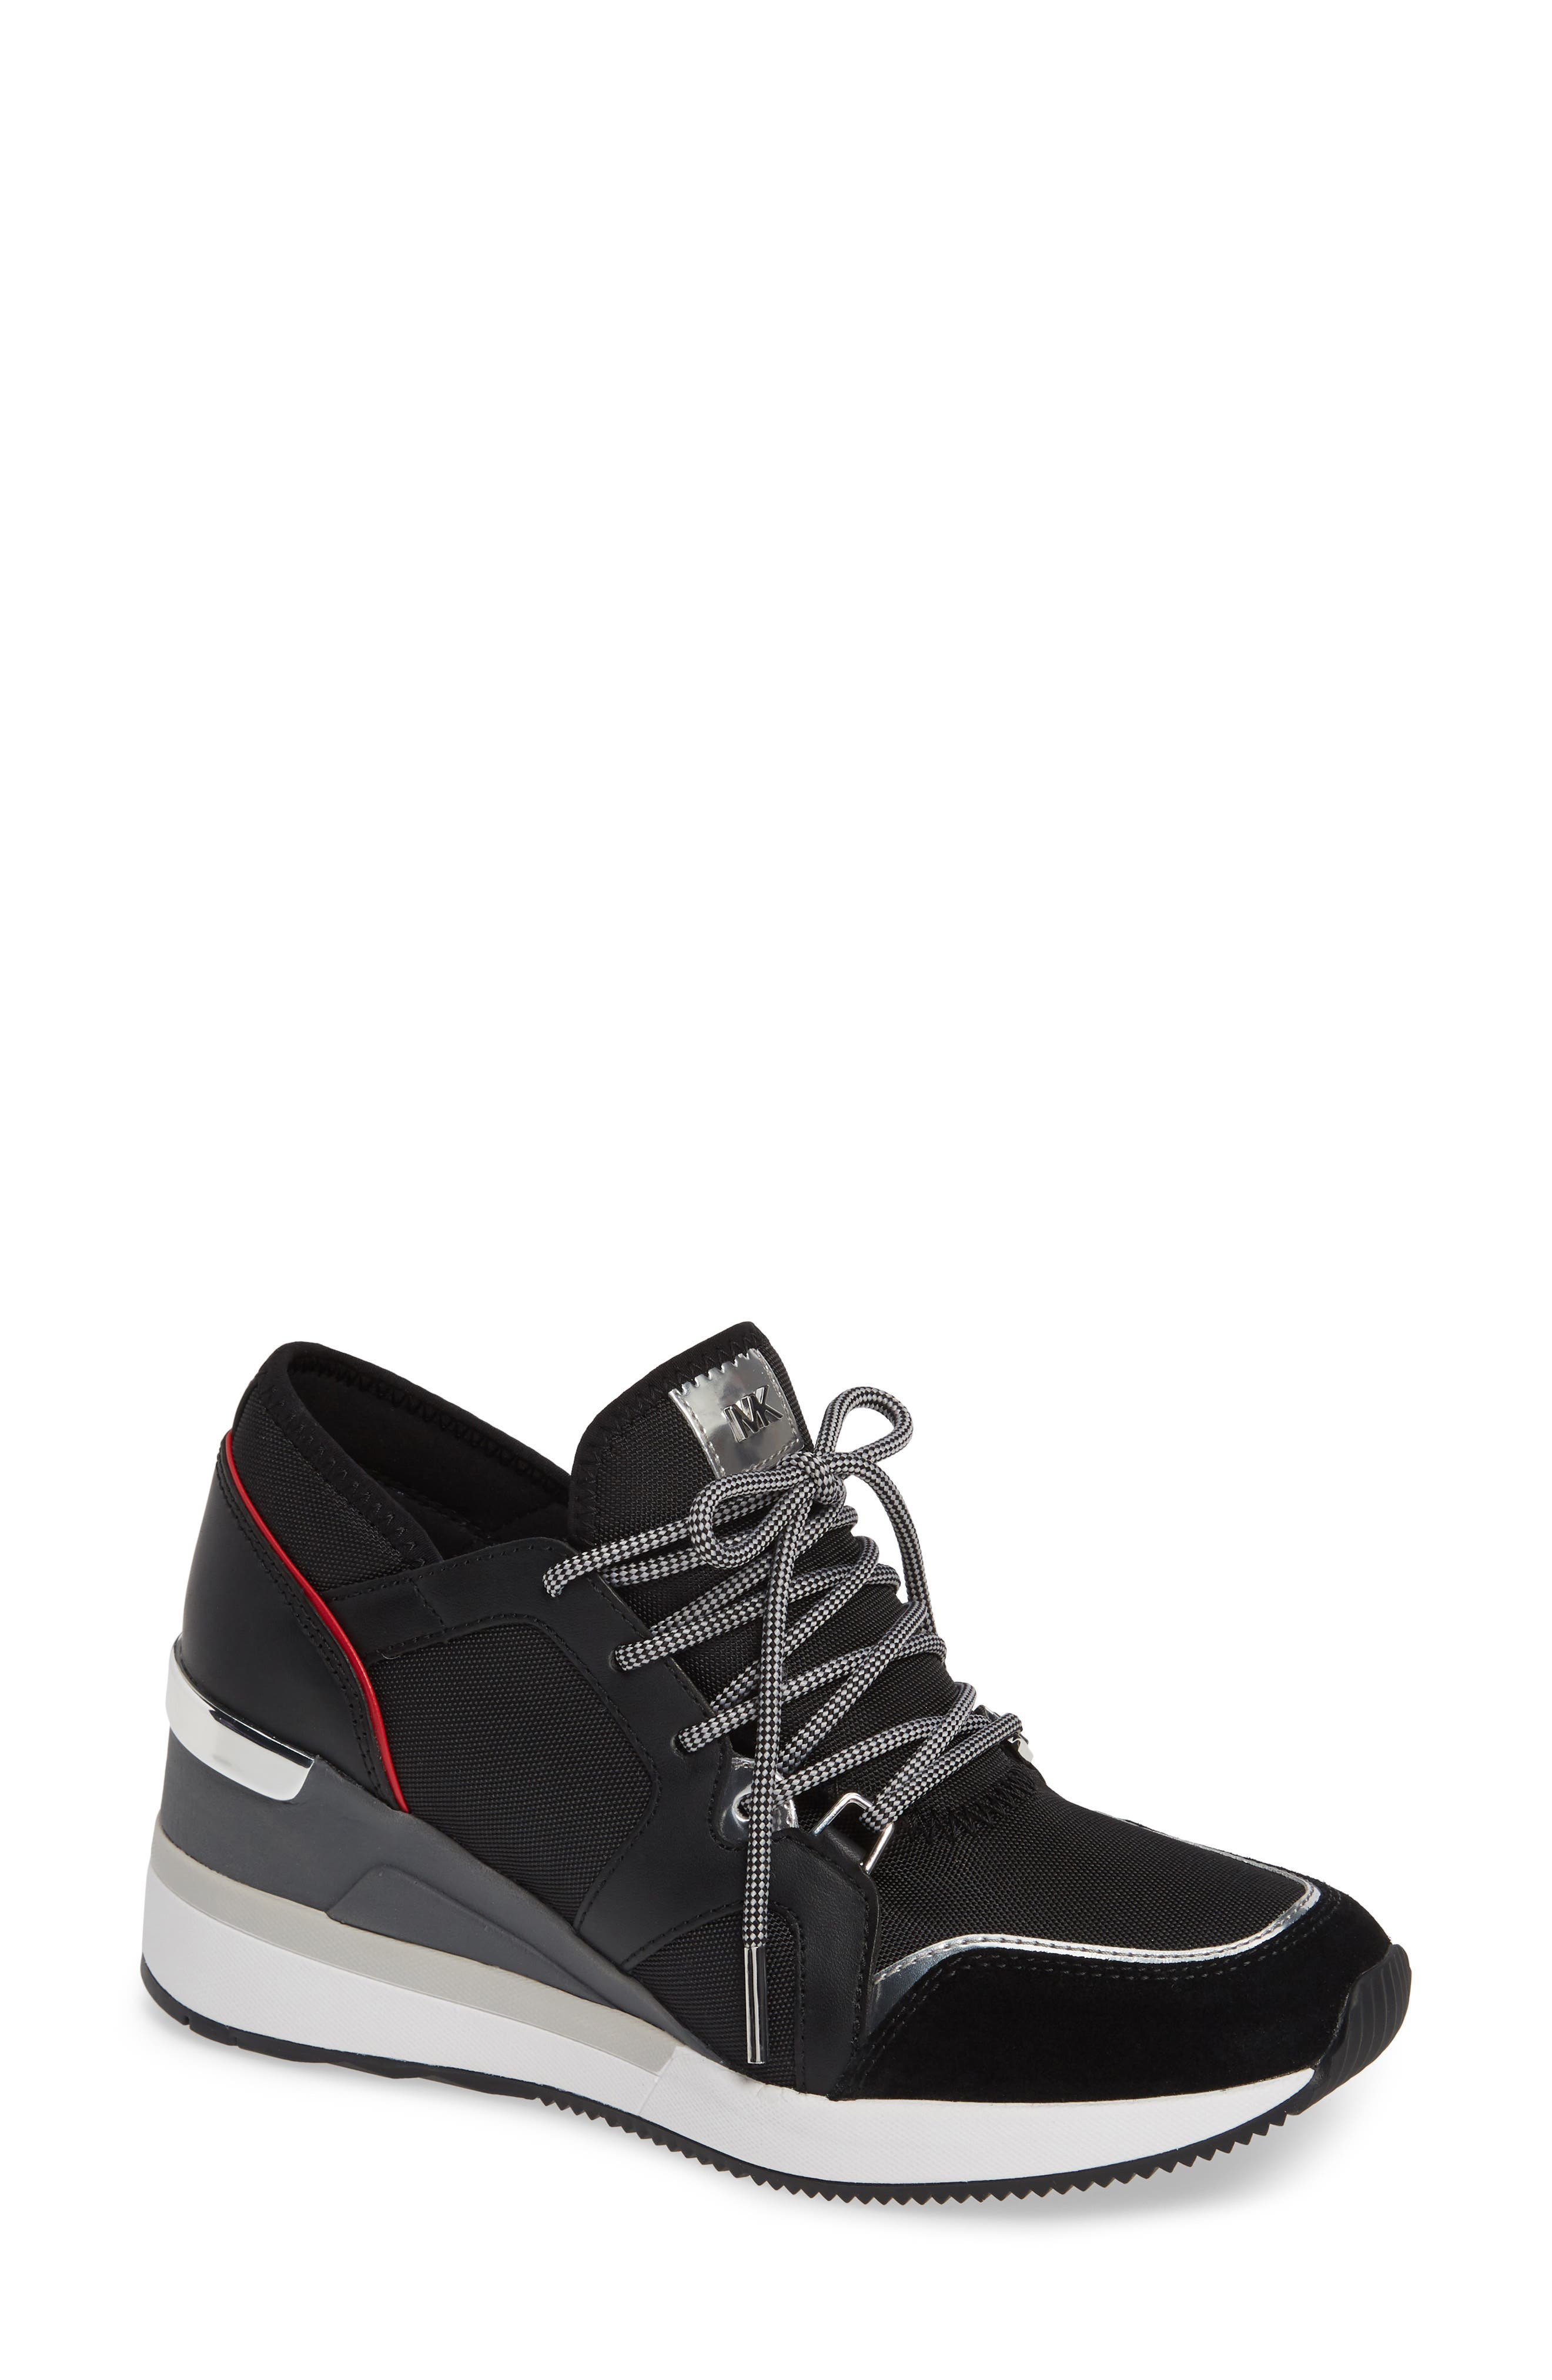 Scout Trainer Wedge Sneaker,                         Main,                         color, 001